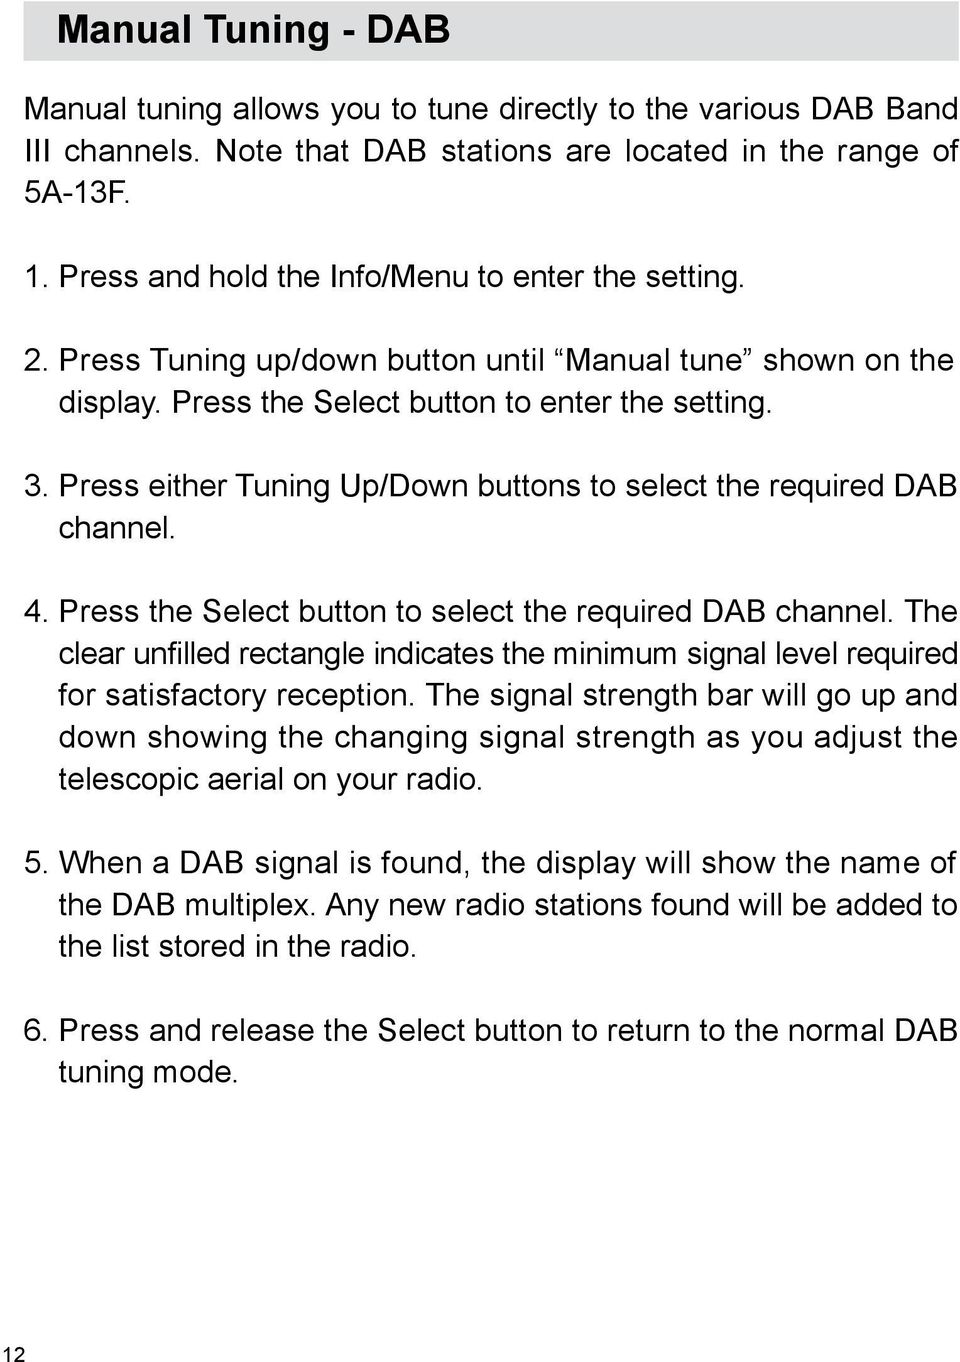 Press either Tuning Up/Down buttons to select the required DAB channel. 4. Press the Select button to select the required DAB channel.